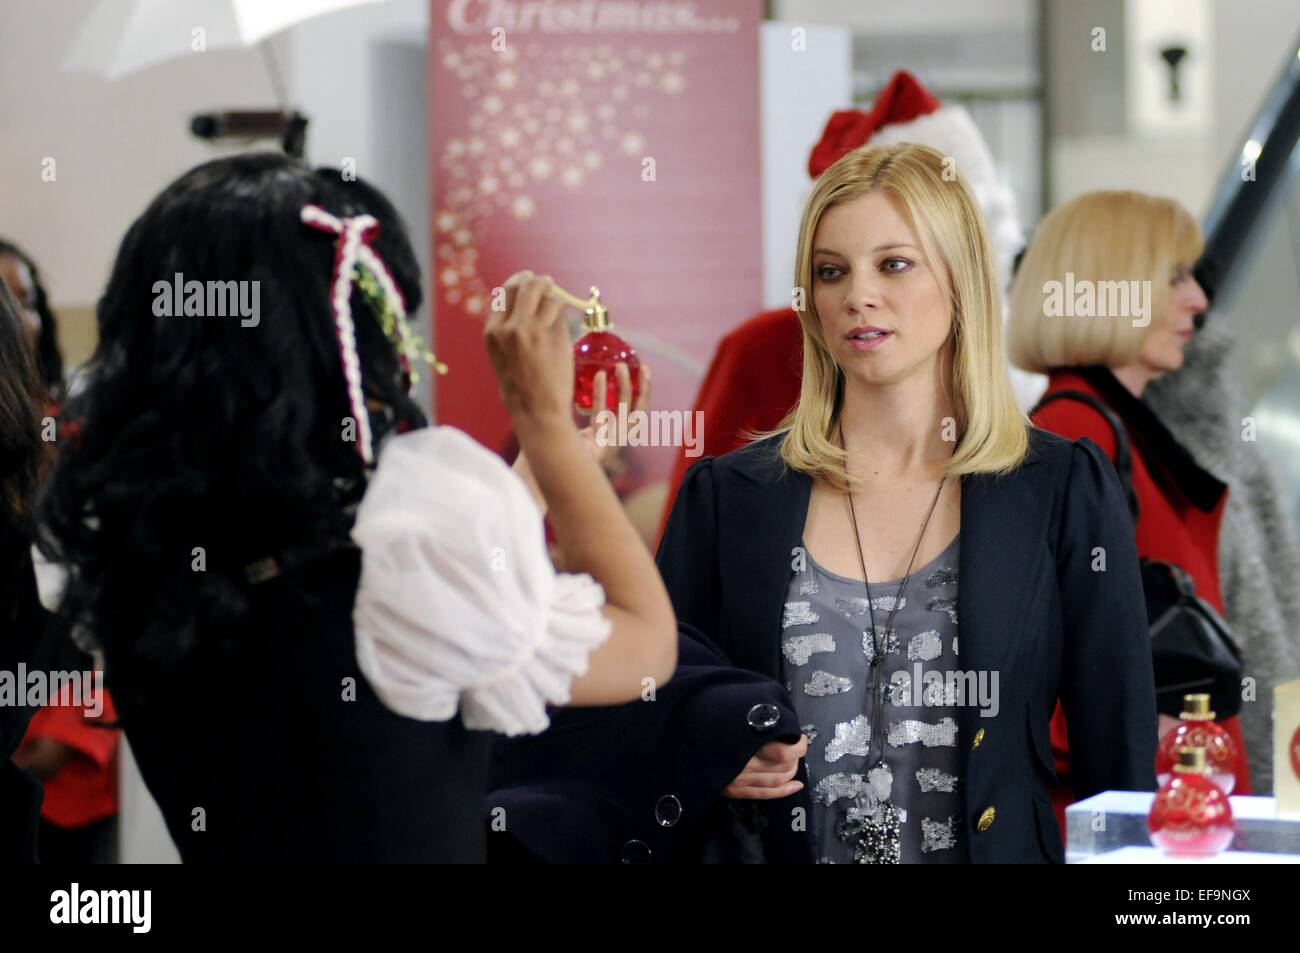 AMY SMART 12 DATES OF CHRISTMAS (2011 Stock Photo, Royalty Free ...